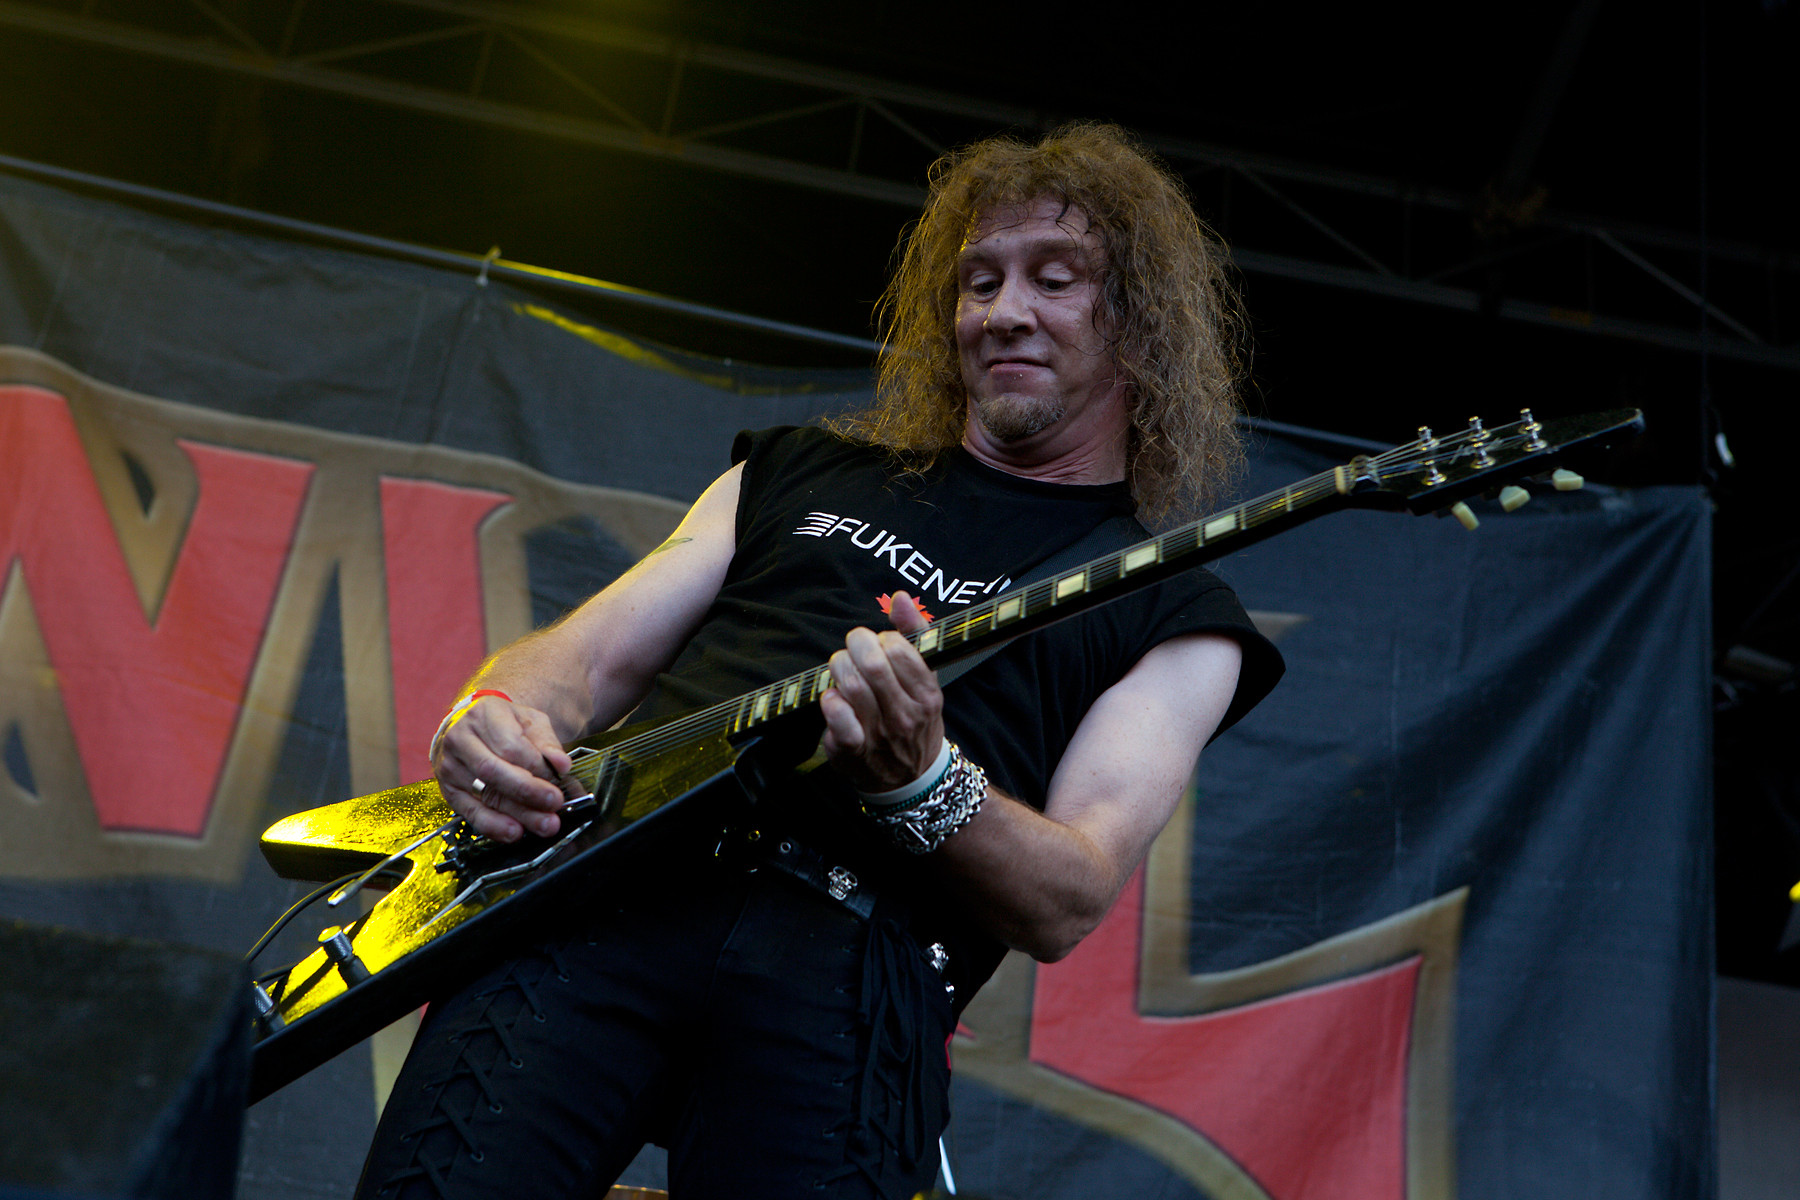 Anvil @ Heavy T.O. 2011